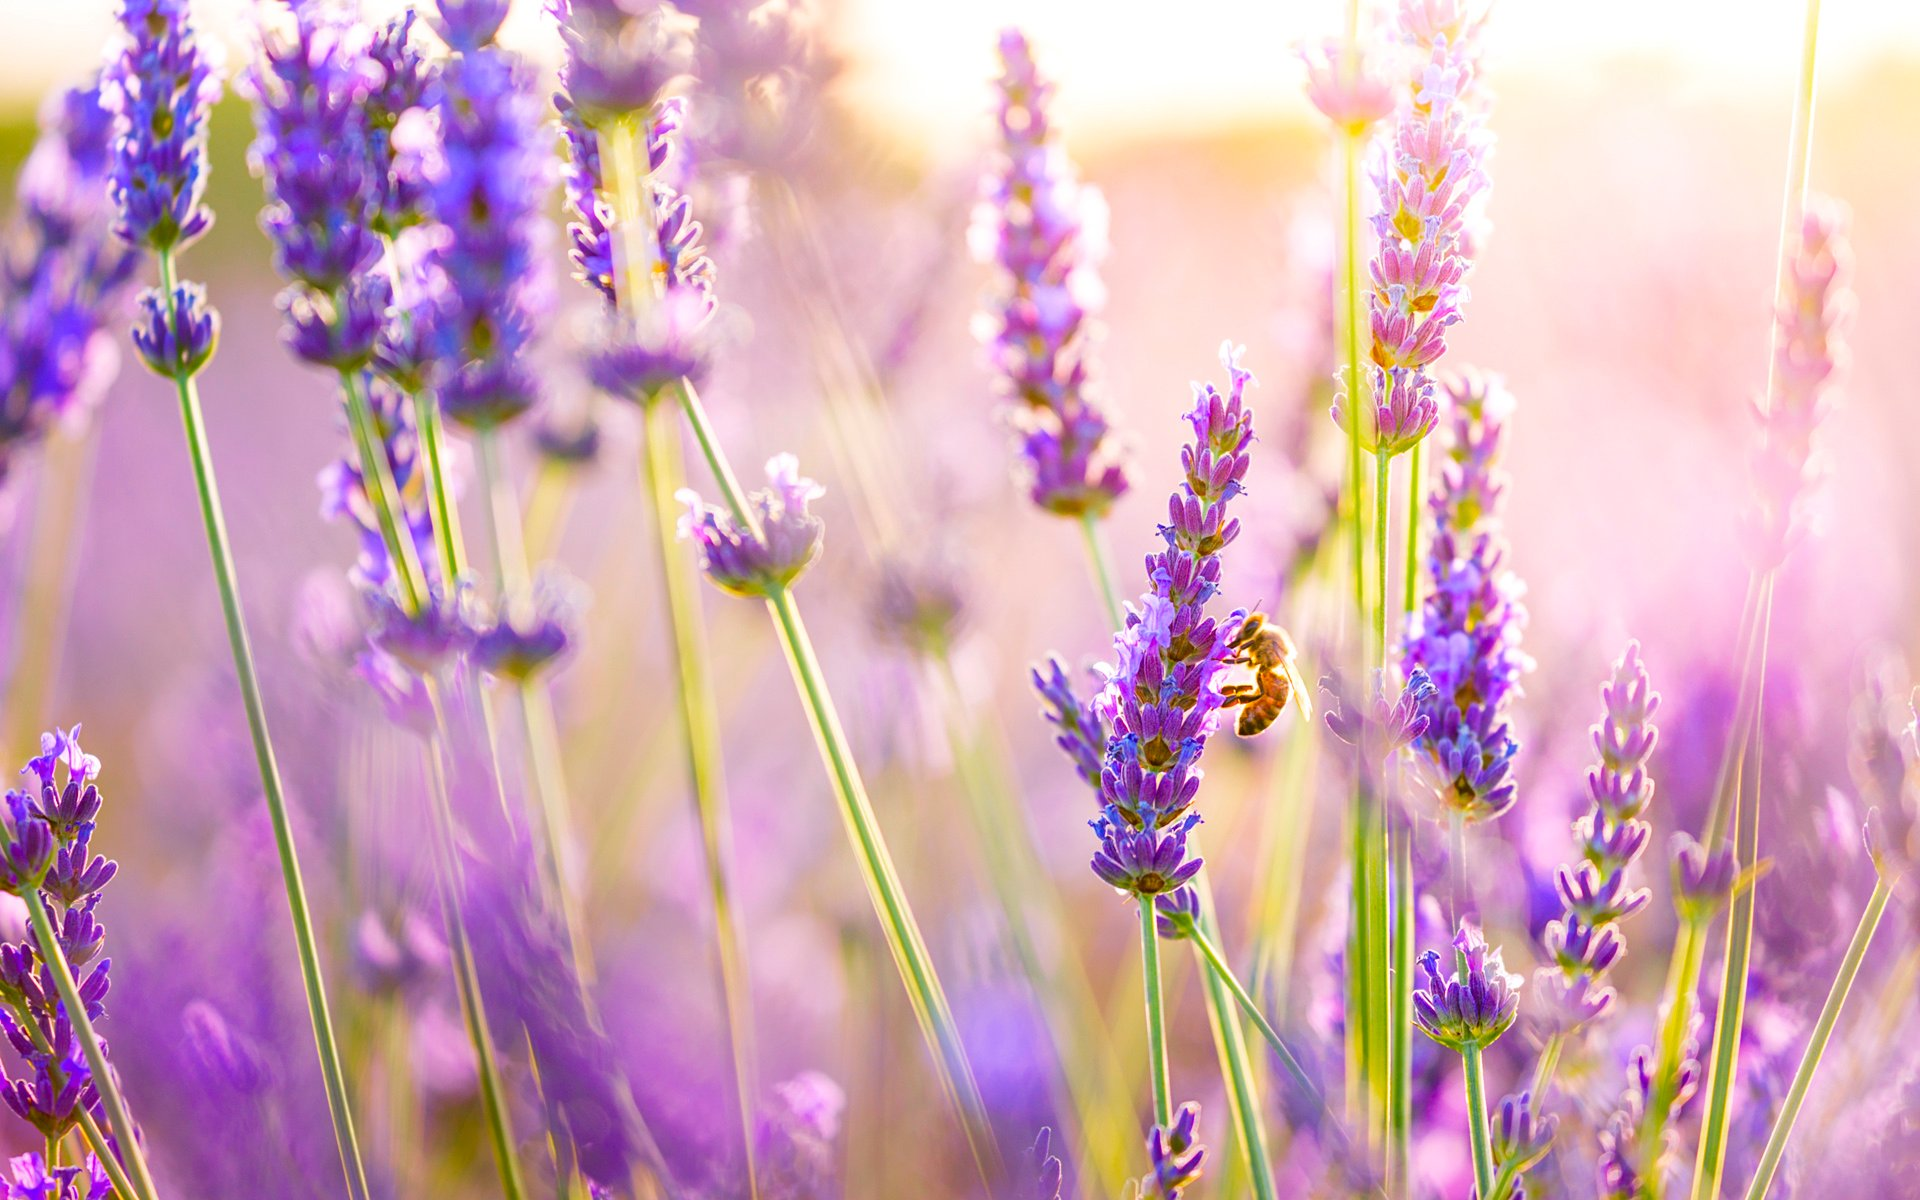 LAVENDER WALLPAPERS FREE Wallpapers Background images 1920x1200